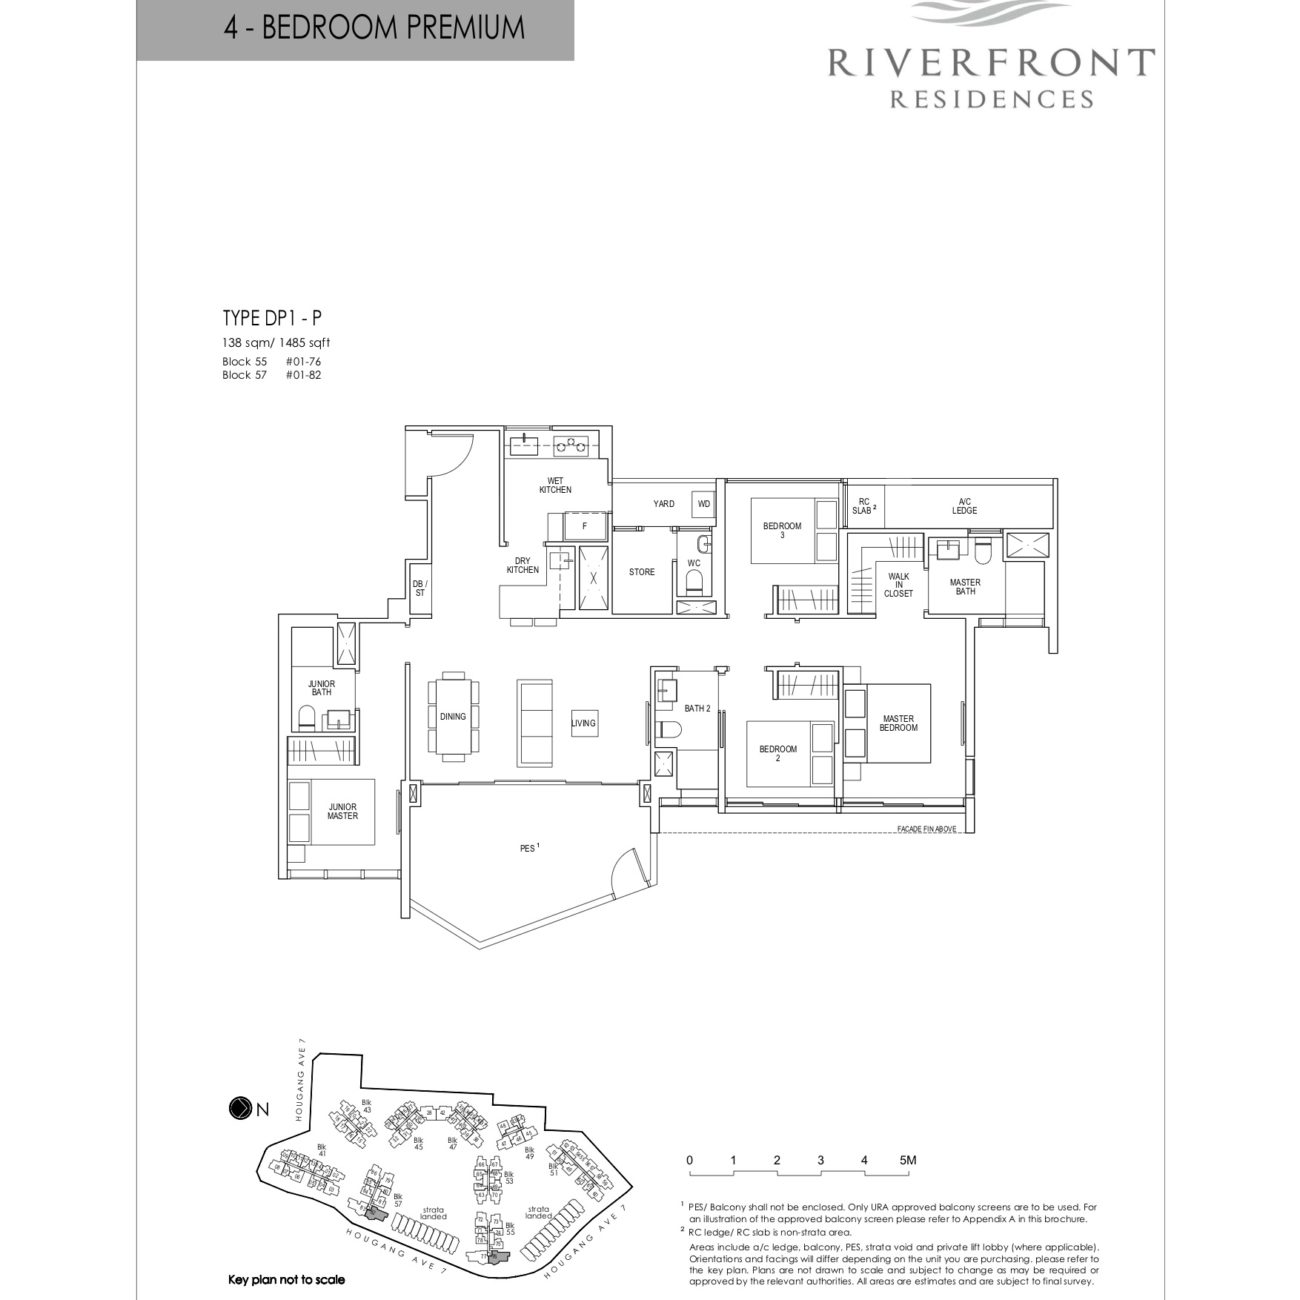 riverfront-residences-floorplan-4bedroom-premium-dp1